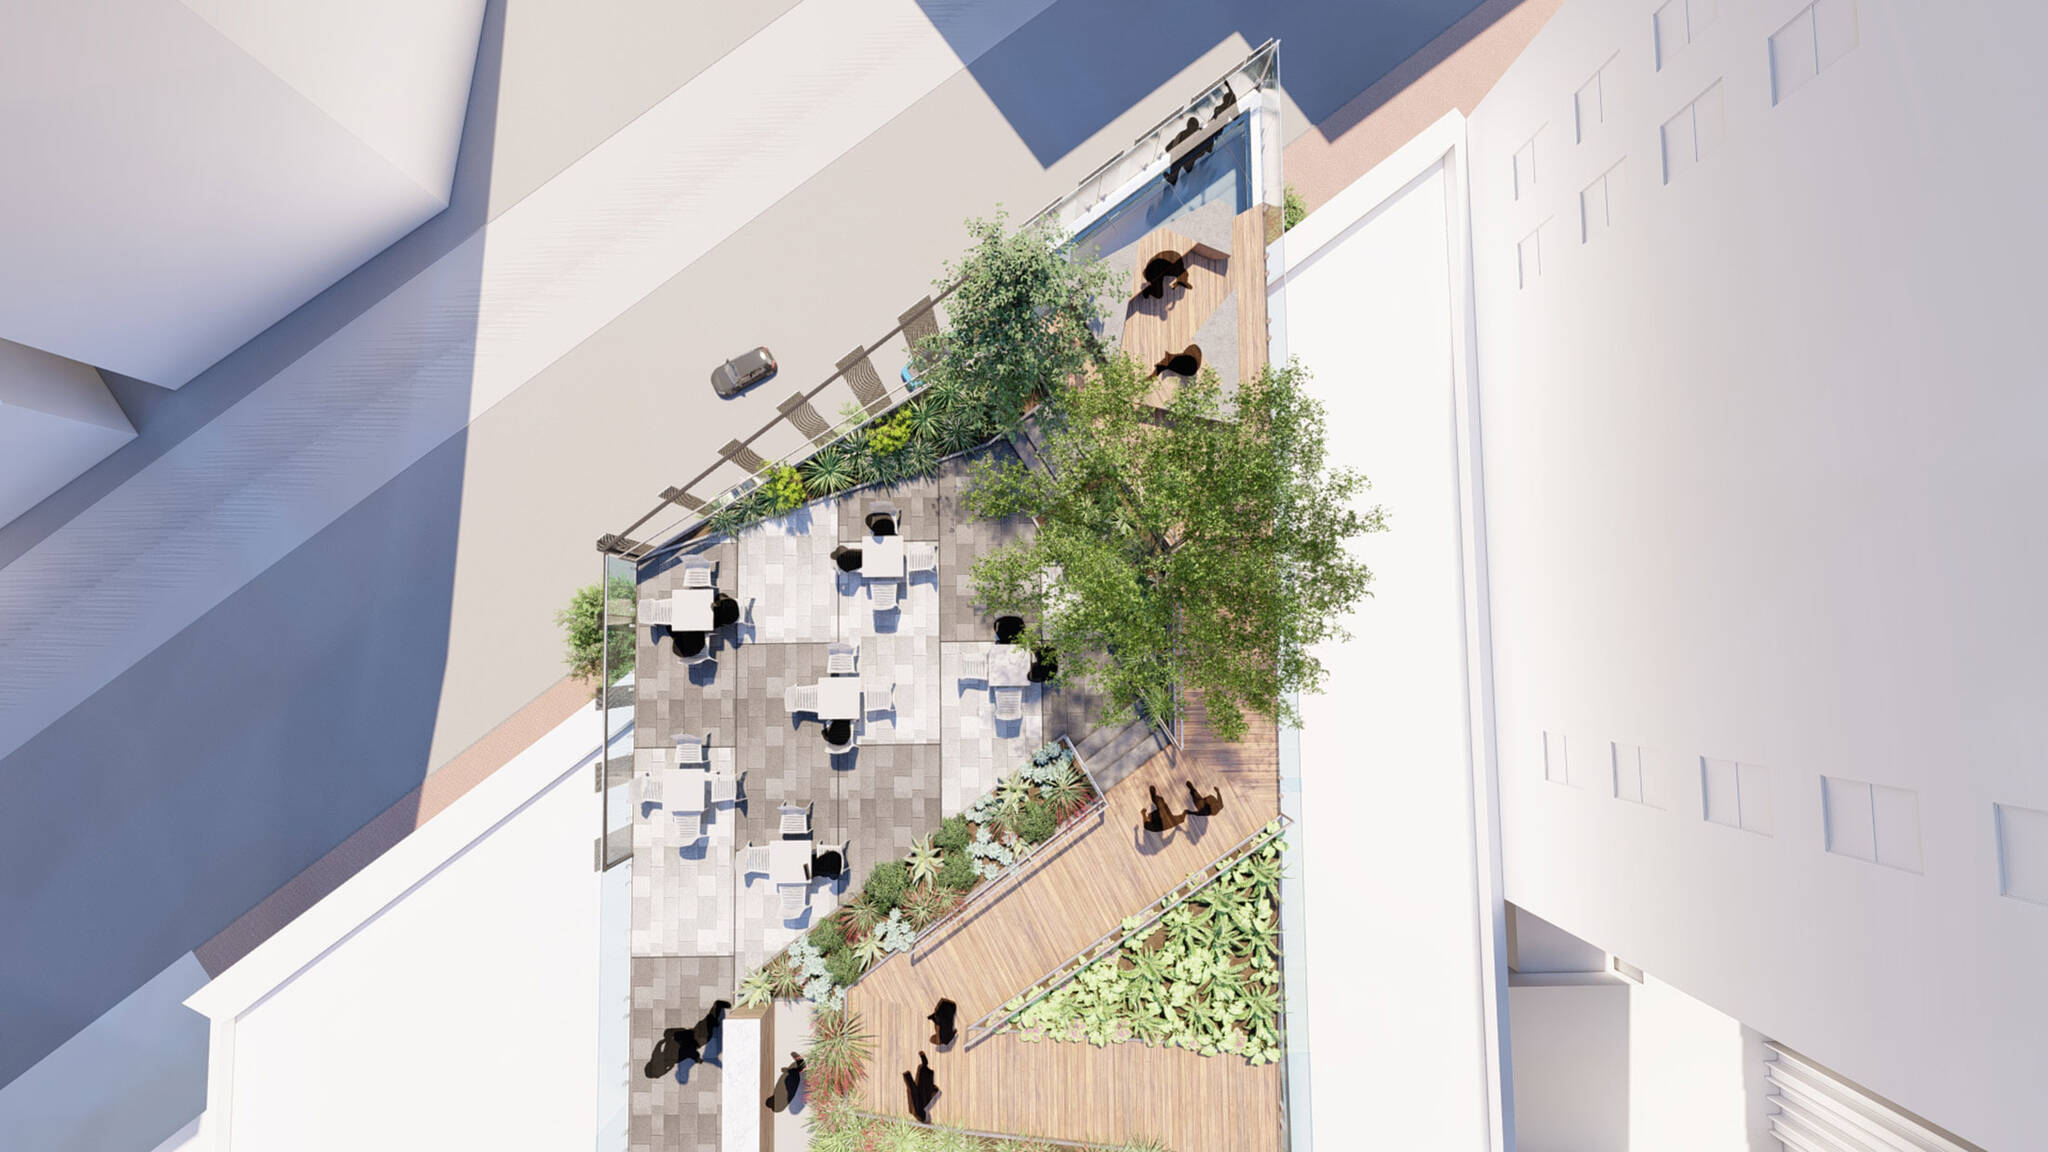 Top view of the terrace of the San Francisco modular project located at 570 Market Street on the Financial District of San Francisco, California designed by the architecture studio Danny Forster & Architecture